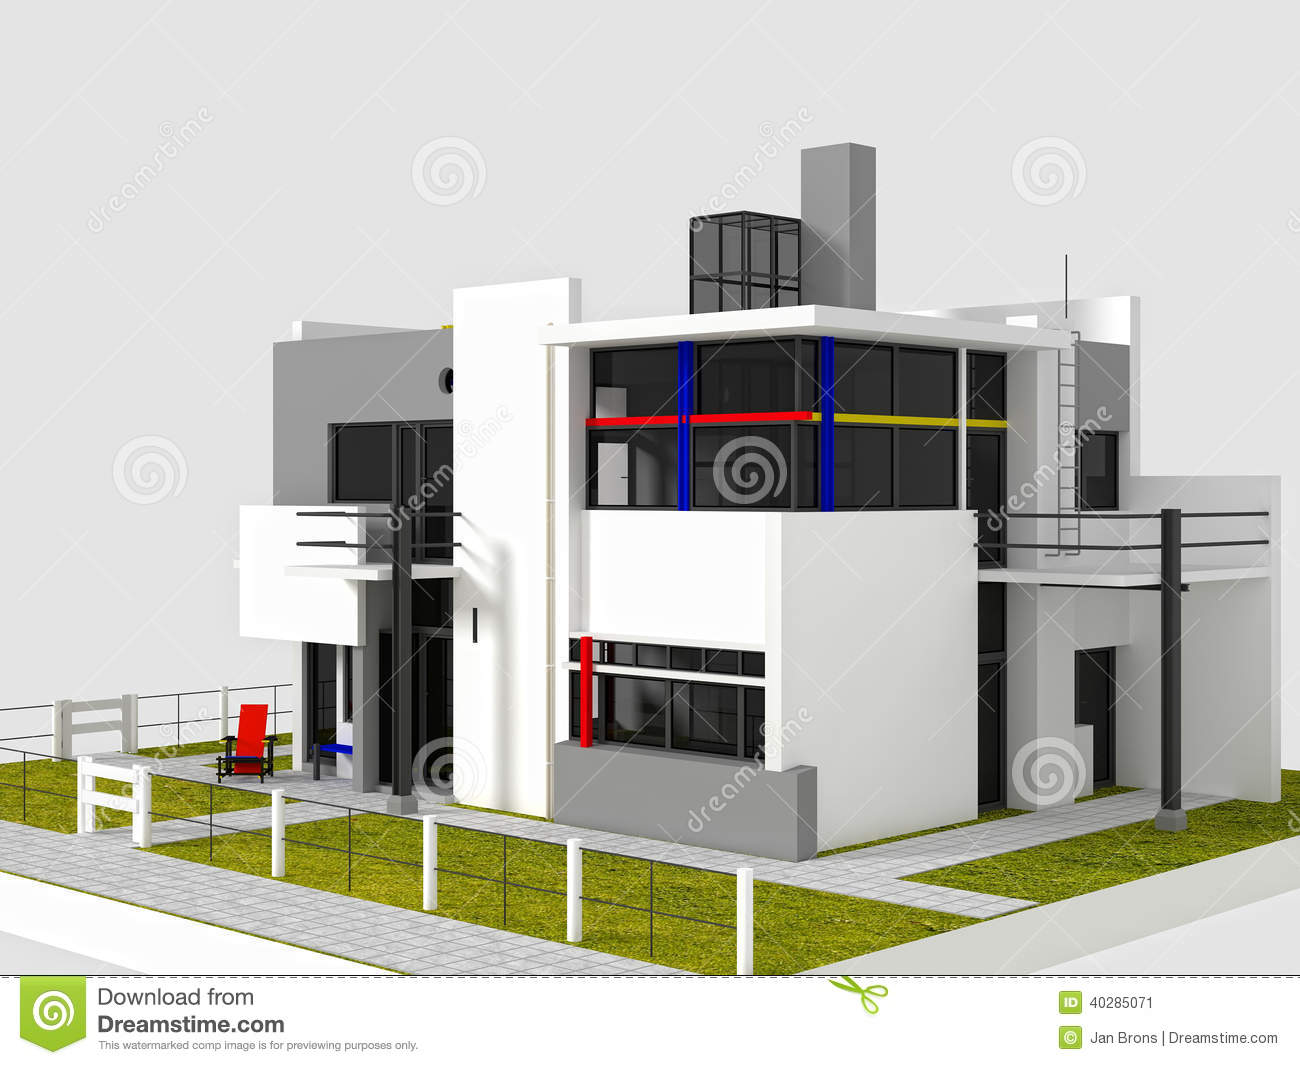 Rietveld Schroder East View Stock Illustration - Image ...